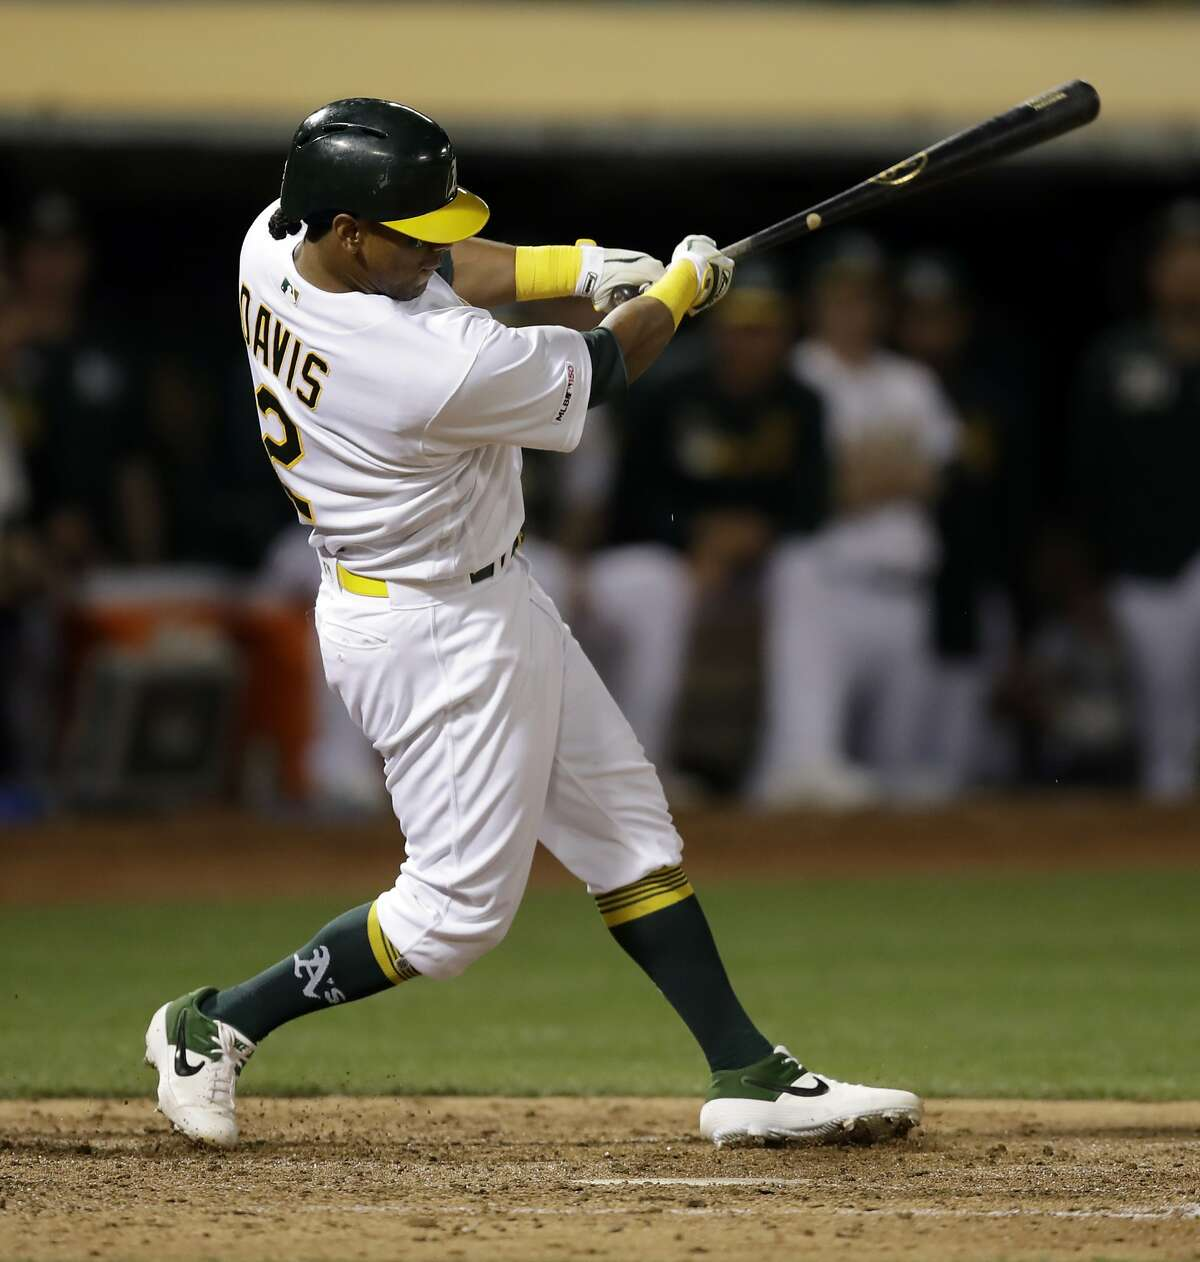 Oakland Athletics' Khris Davis swings for an RBI-single off Texas Rangers' Lance Lynn in the fourth inning of a baseball game Tuesday, April 23, 2019, in Oakland, Calif. (AP Photo/Ben Margot)